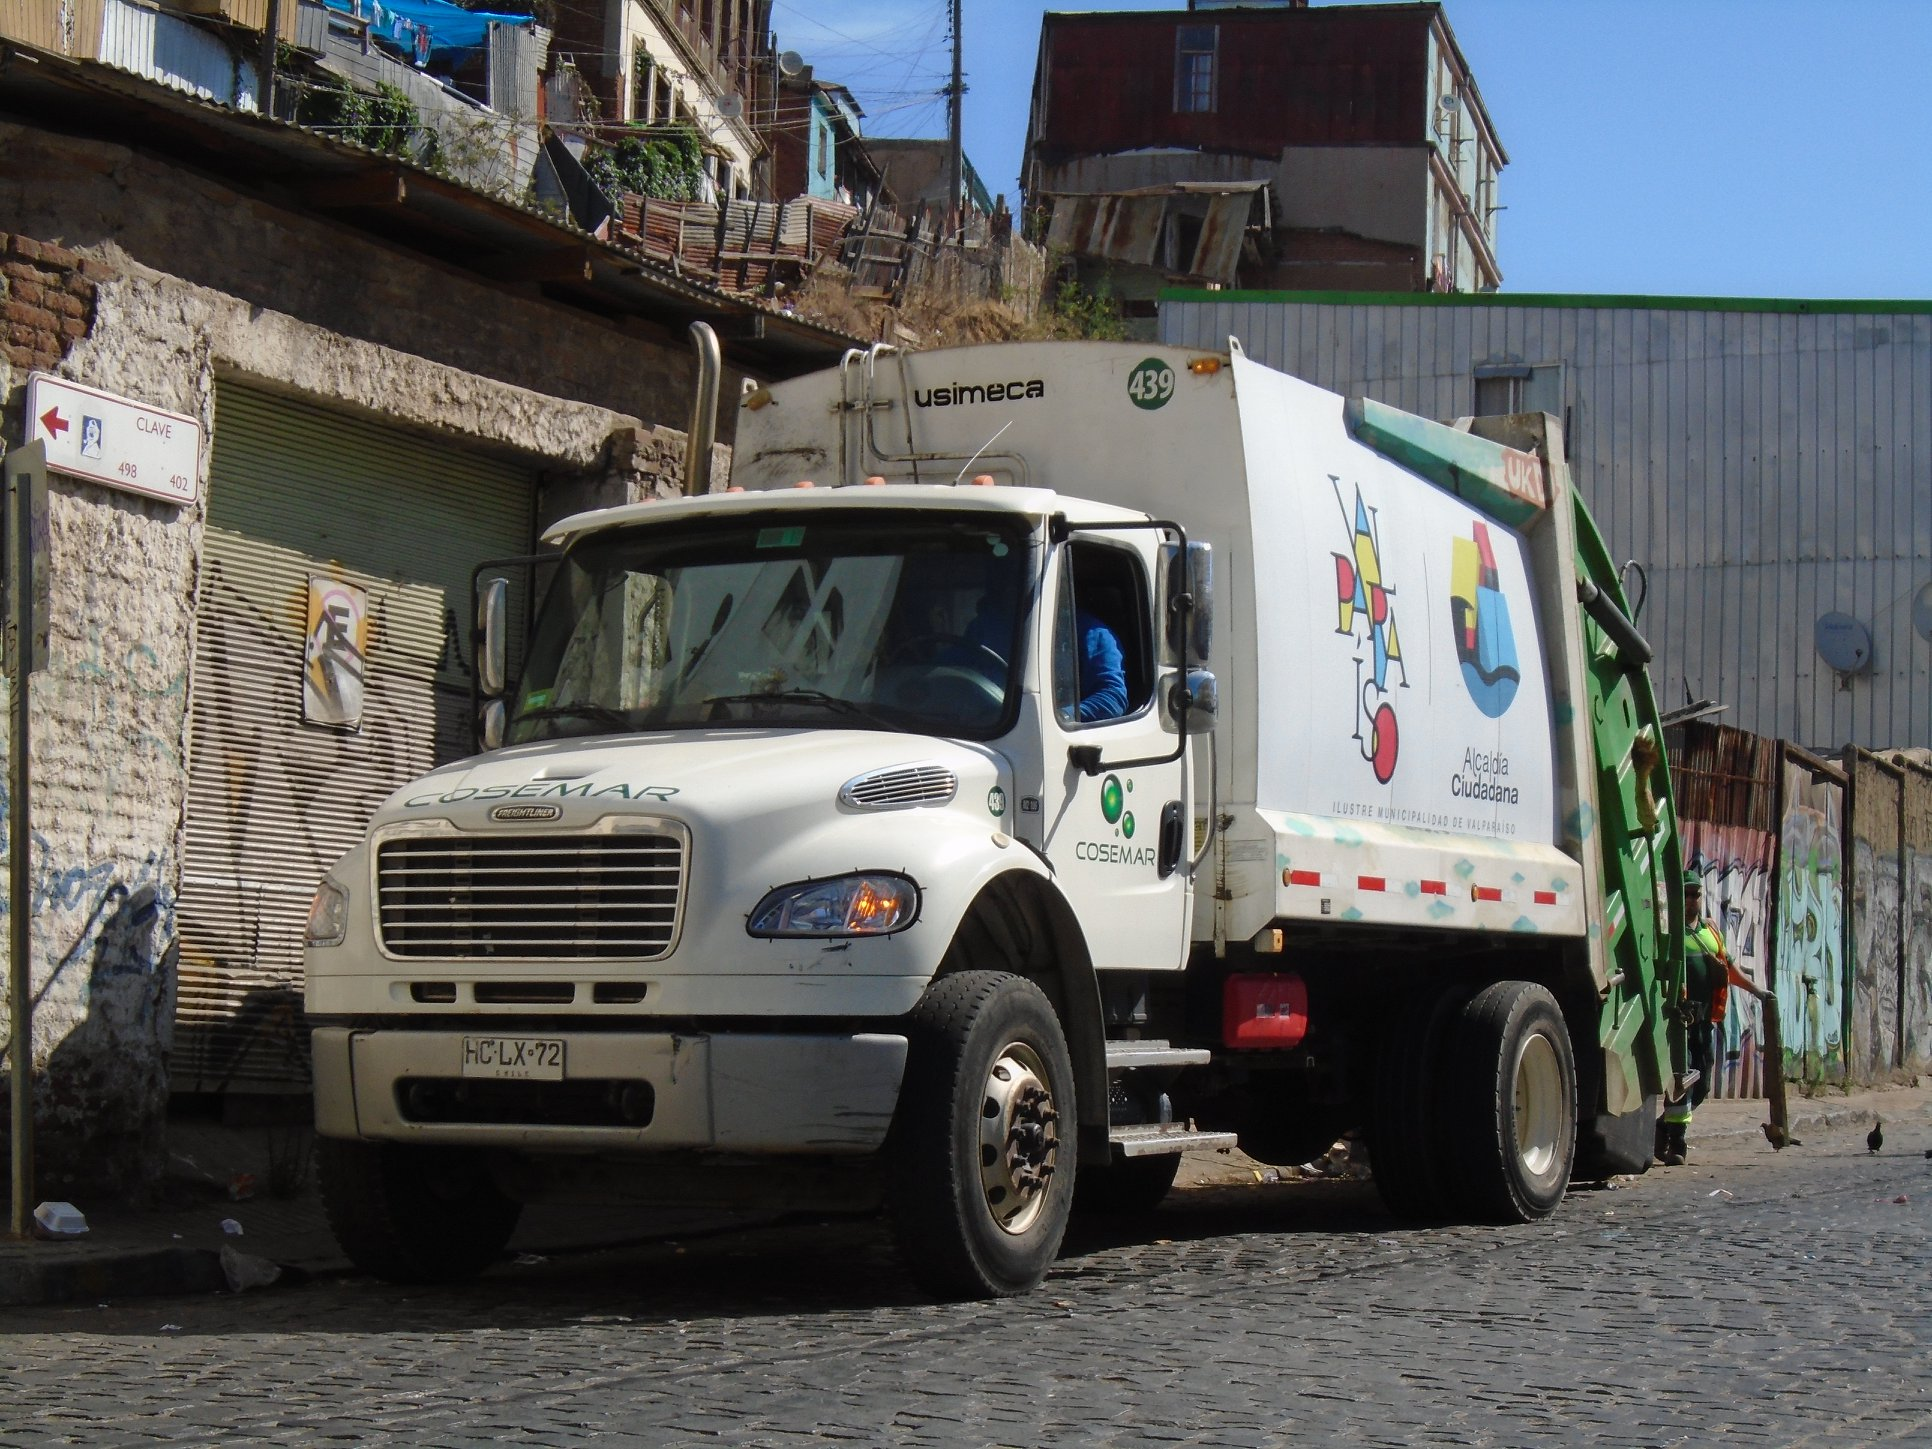 FREIGHTLINER-M2-106-MBE-4X2-CAMION-RECOLECTOR-No-439--2015-